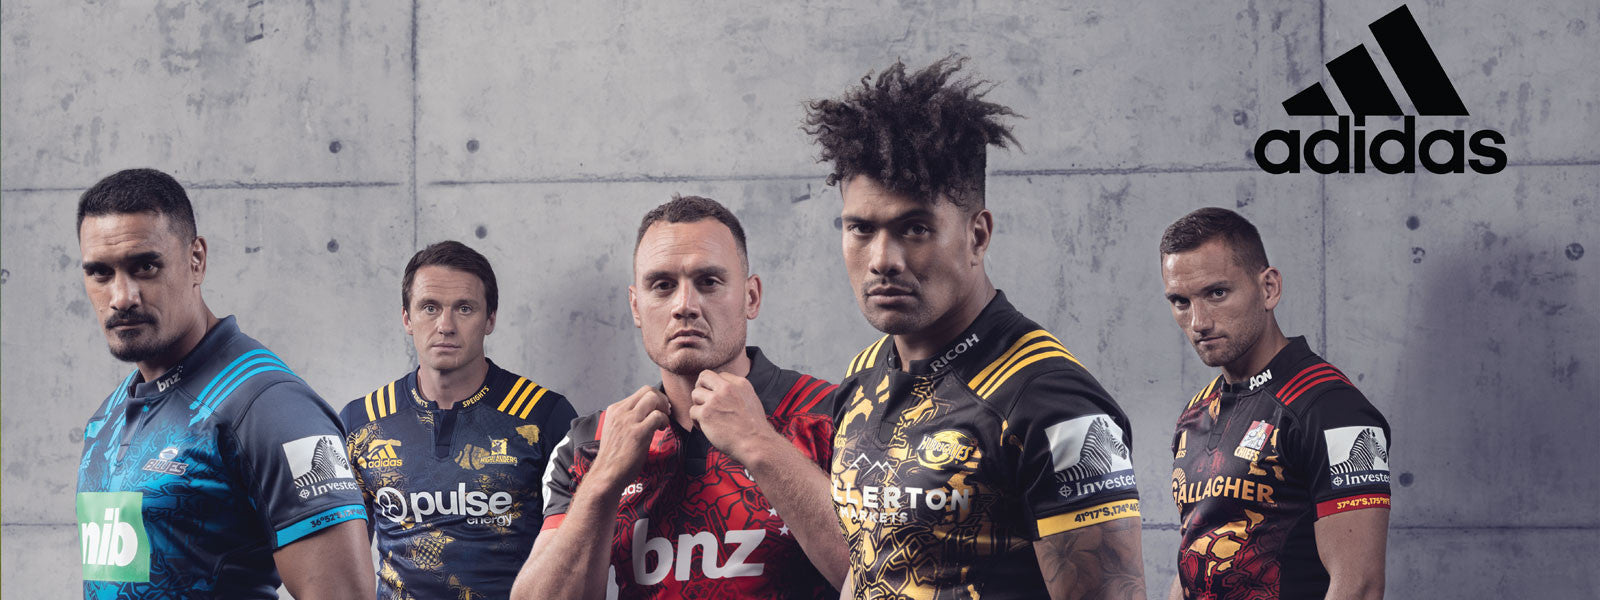 Adidas unveil special edition Super Rugby jerseys in preparation for the 2017 British and Irish Lions tour